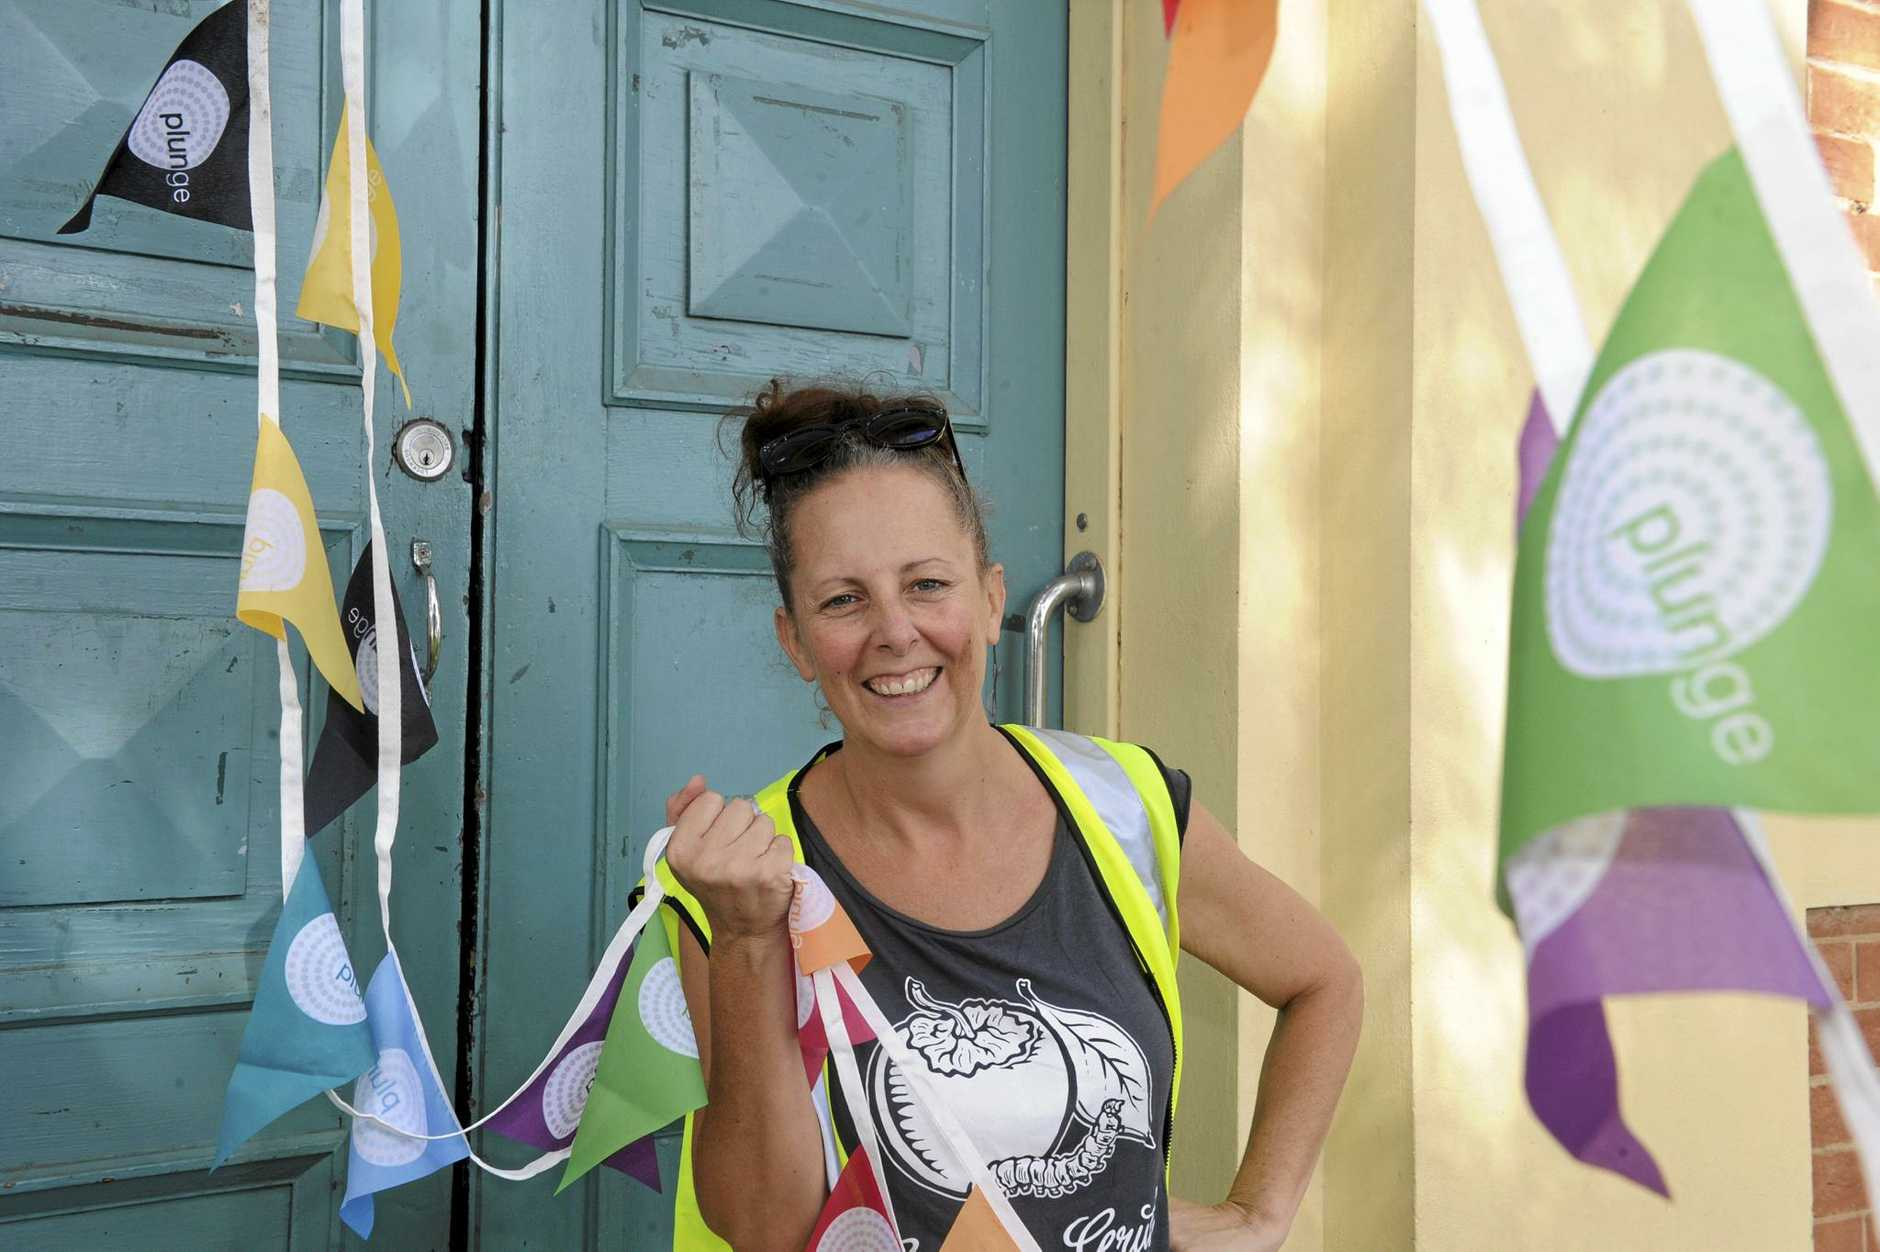 SPLASH OF COLOUR: Plunge co-ordinator Sarah Nash is helping add a splash of colour with bunting installed in South Grafton ahead of the festival's start this weekend.